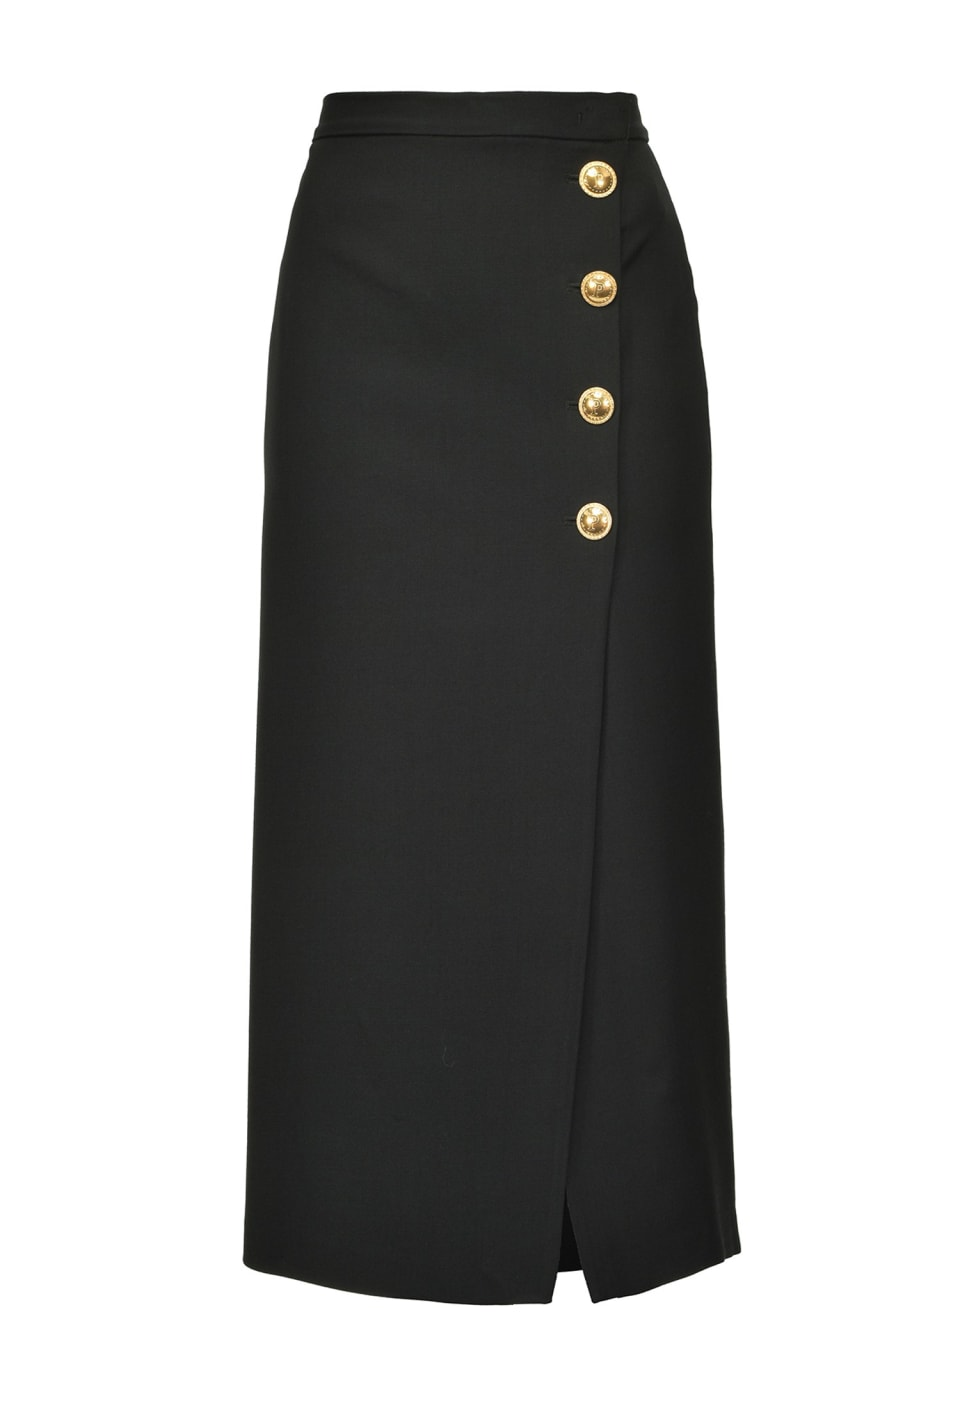 Midi-length skirt with maxi golden buttons - Pinko